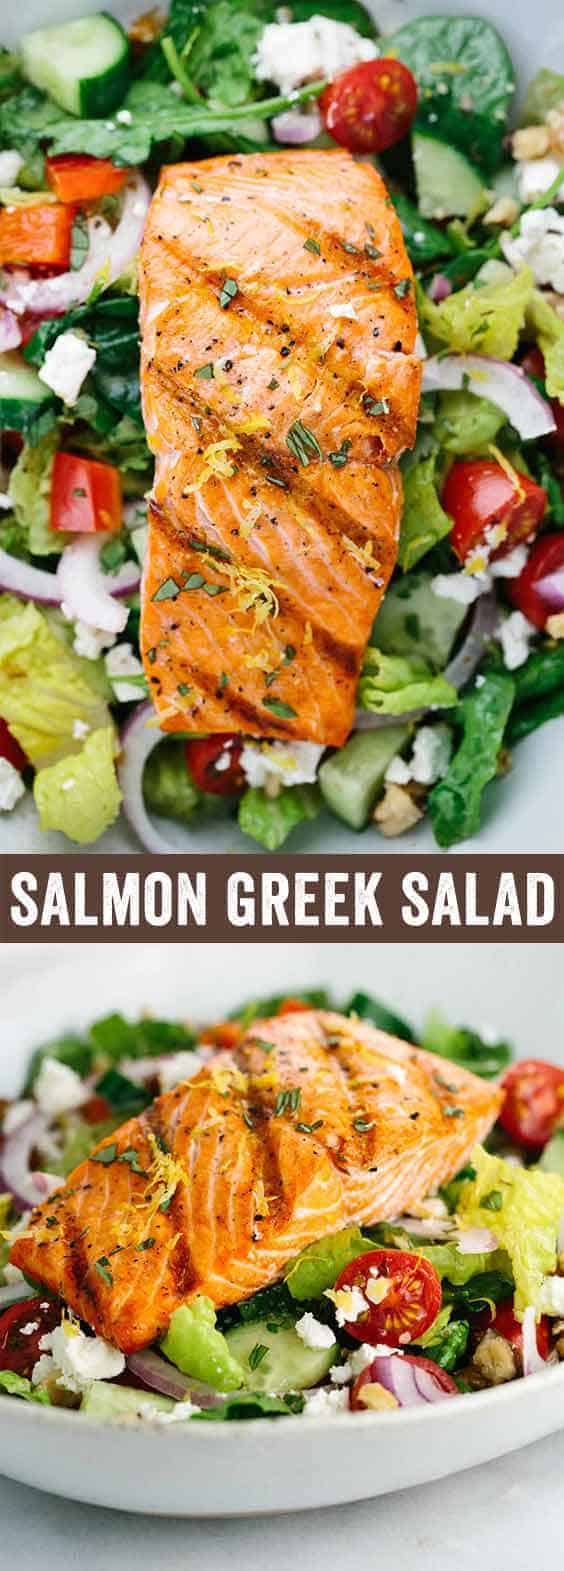 Salmon Greek Salad with Lemon Basil Dressing - A light and healthy recipe that tastes amazing! Crisp vegetables are tossed in a tangy lemon basil dressing and topped with flaky salmon.